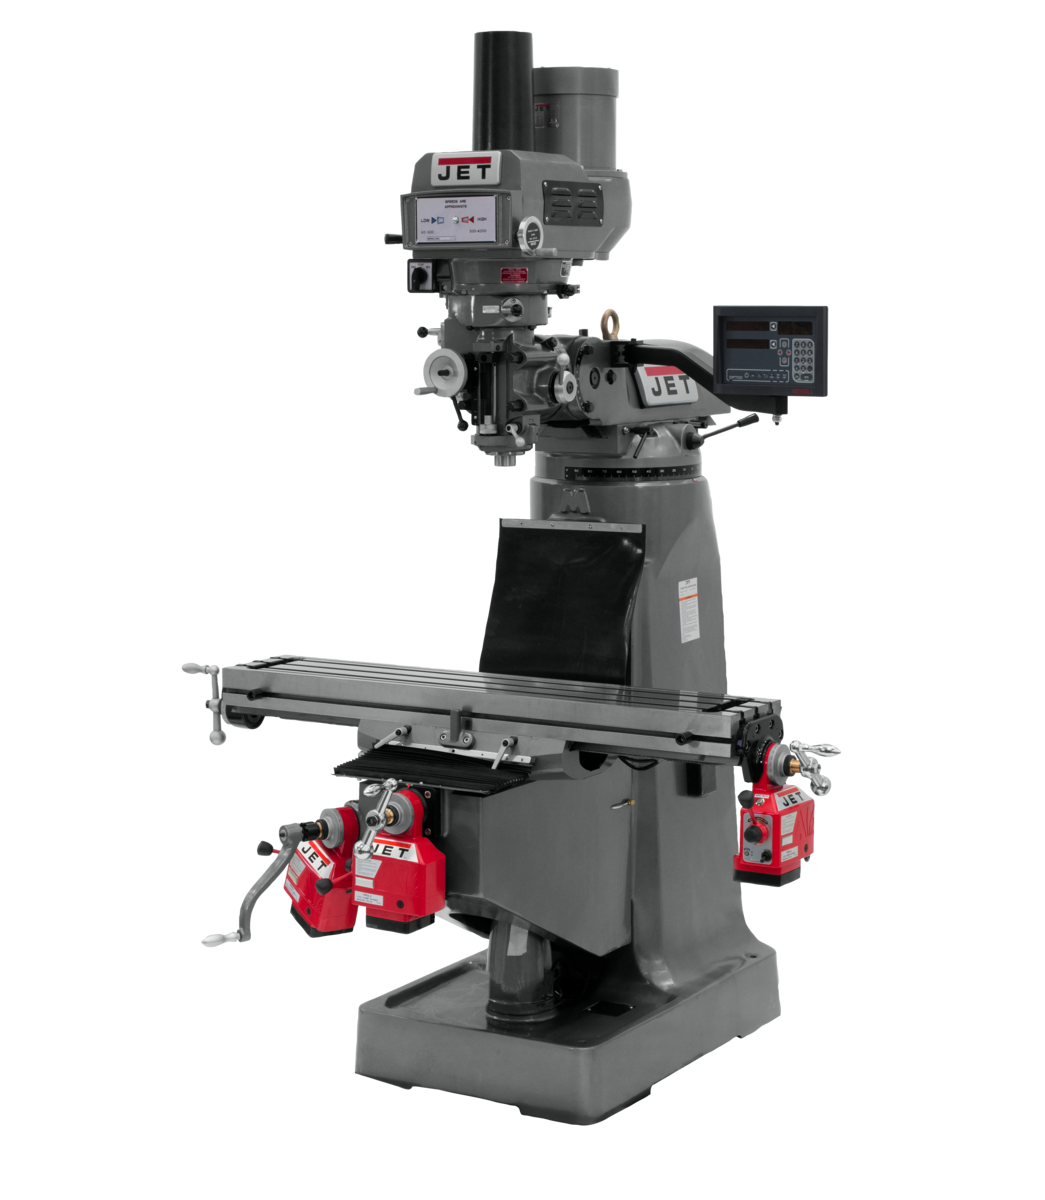 JTM-4VS-1 Mill With 3-Axis Newall DP700 DRO (Quill) With X, Y and Z-Axis Powerfeeds and Power Draw Bar